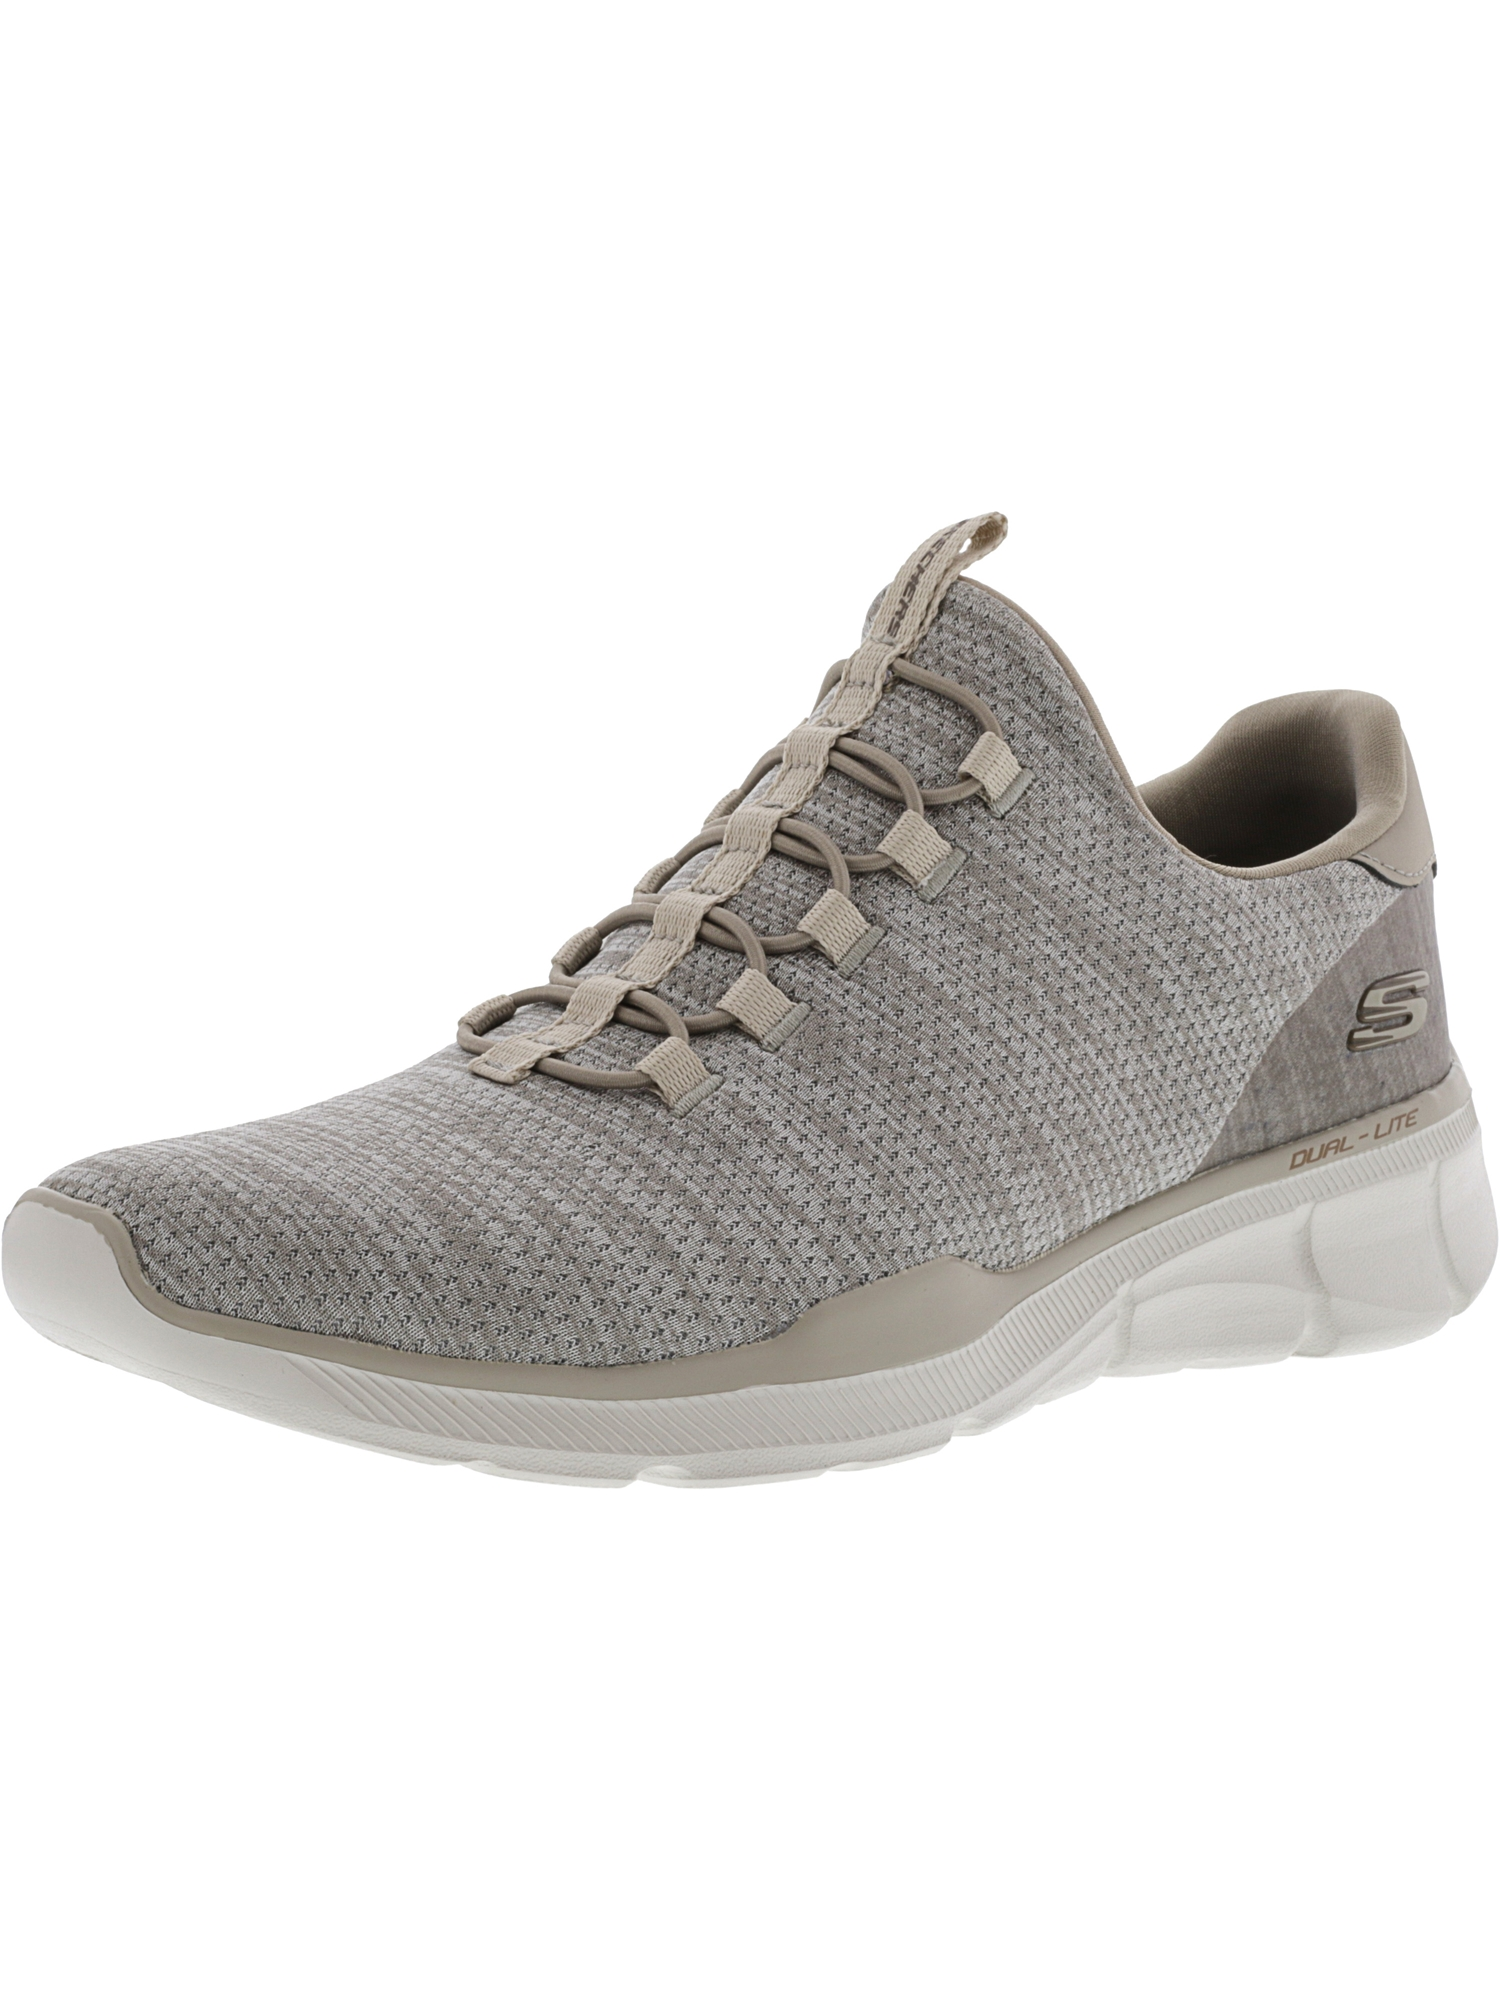 Skechers Men's Equalizer 3.0 Emrick Taupe Ankle-High Fashion Sneaker - 8.5M